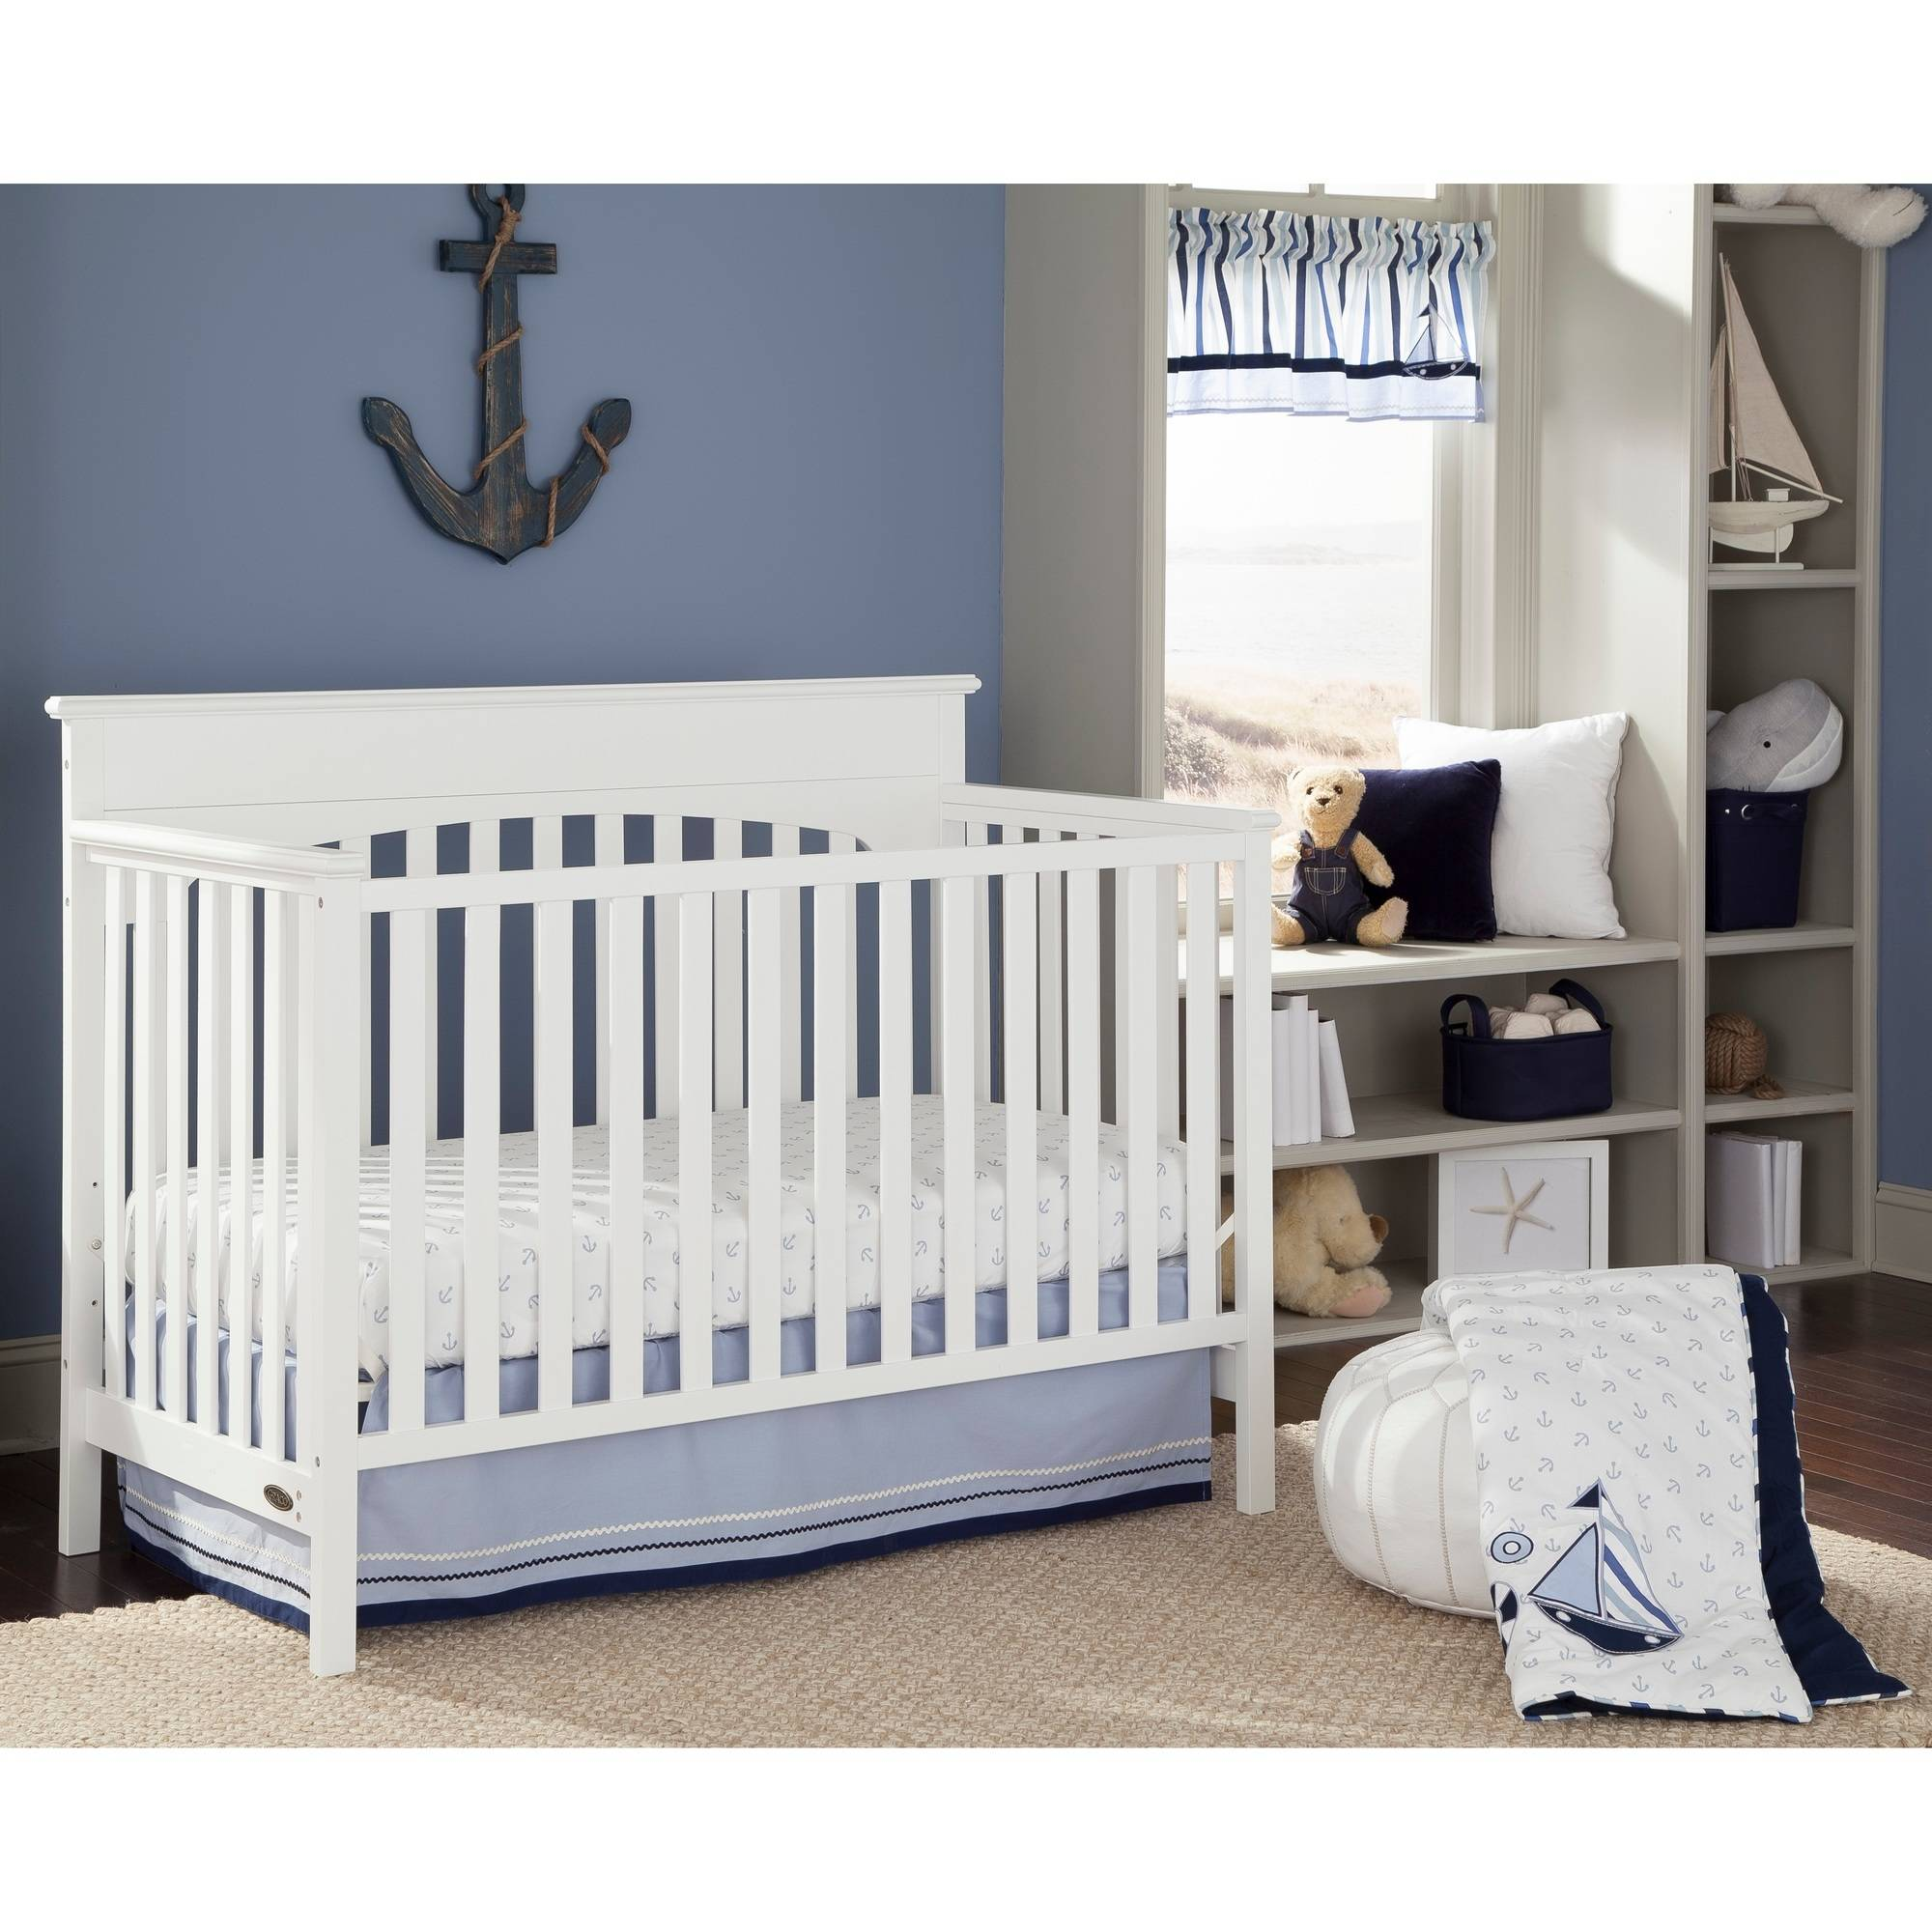 Sorelle Furniture Yorkshire 4 In 1 Lifetime Fixed Side